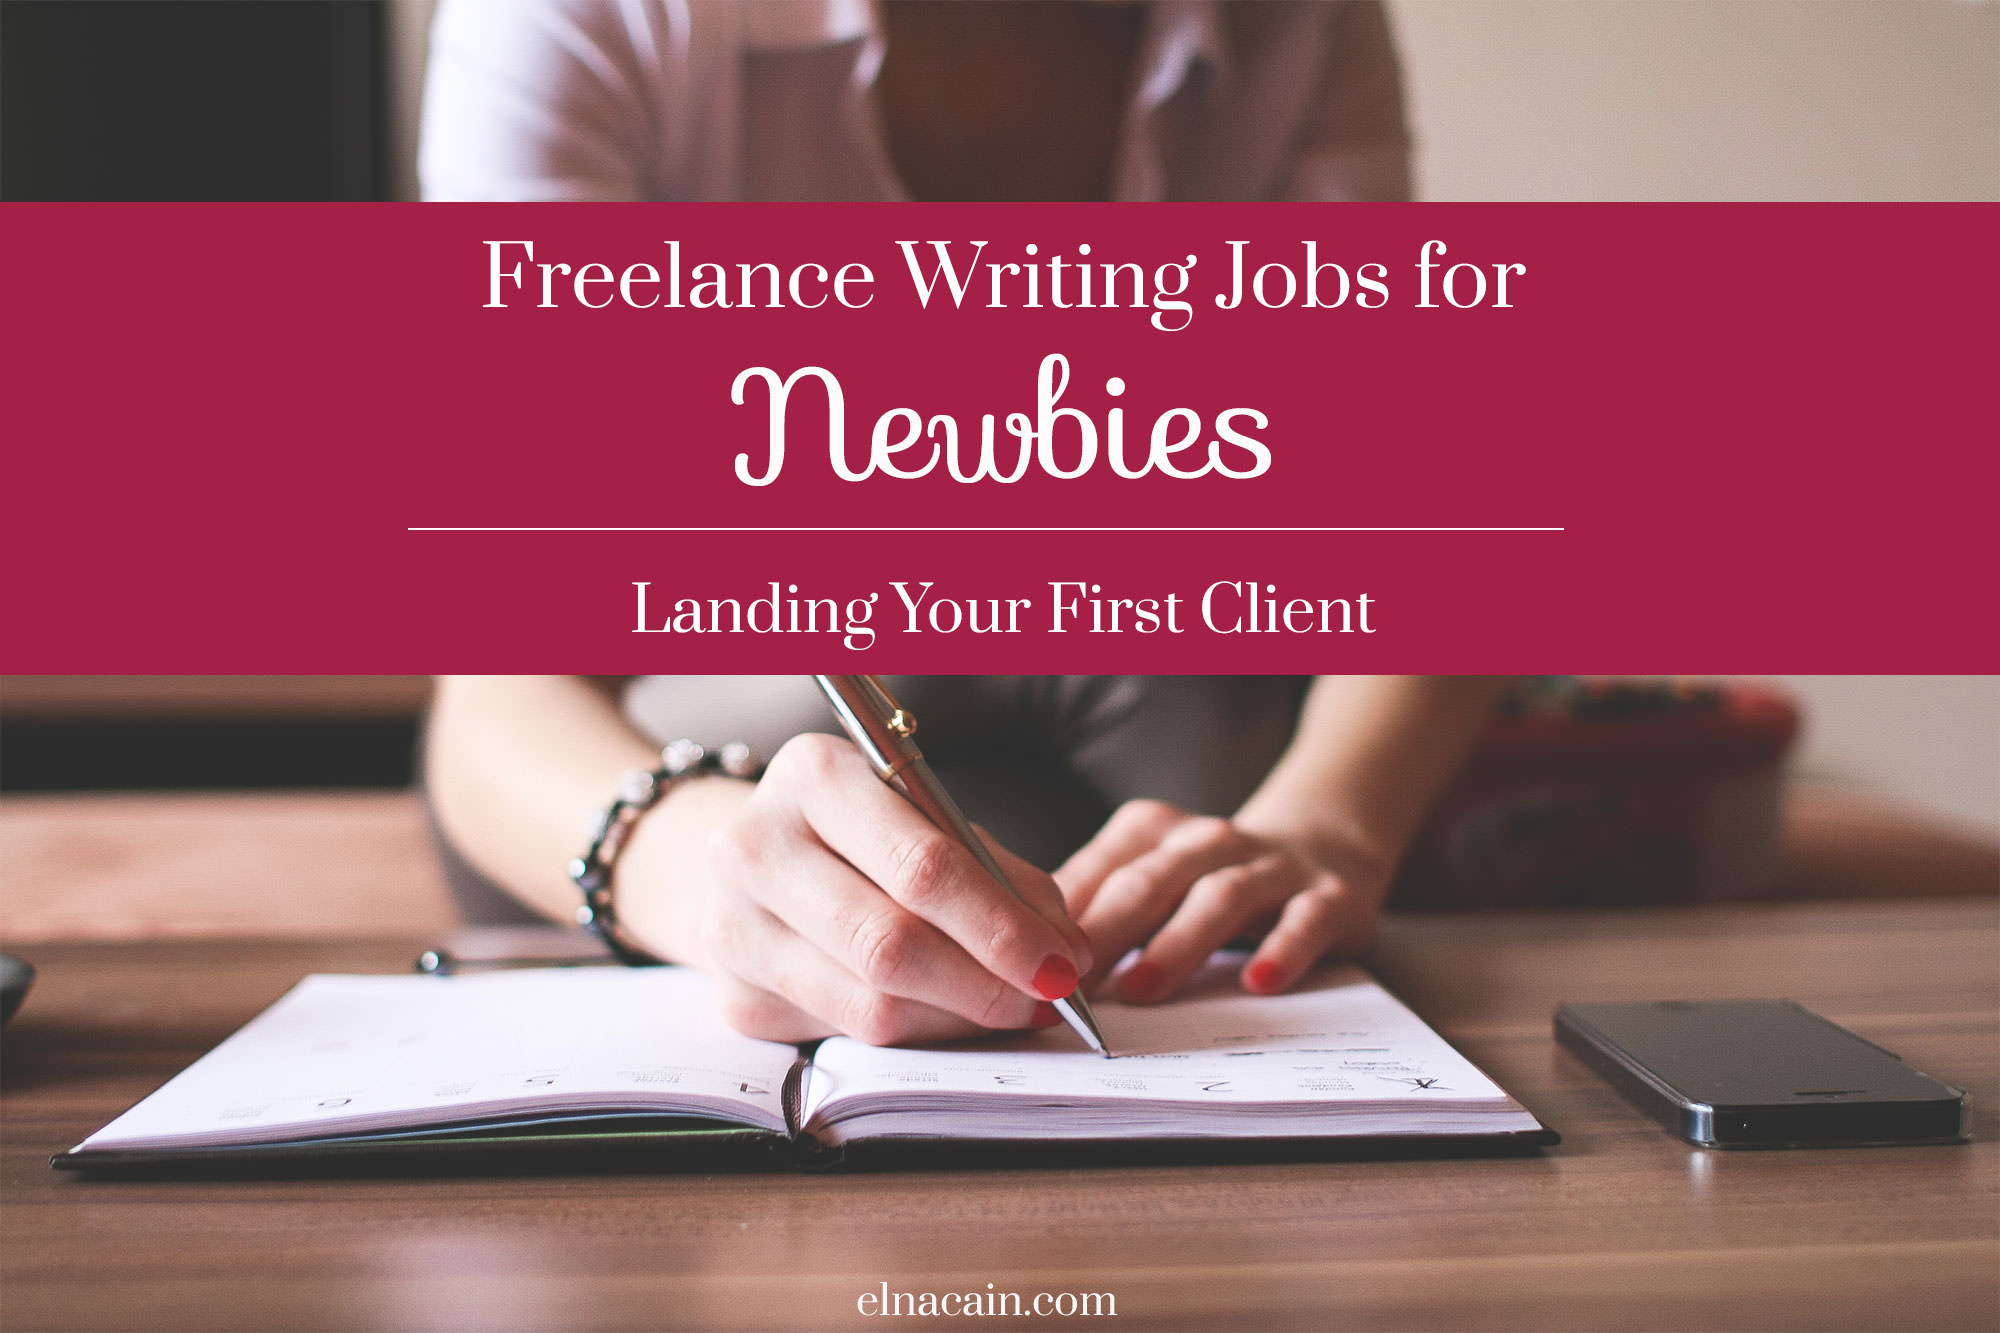 20 ways to lance writing jobs as